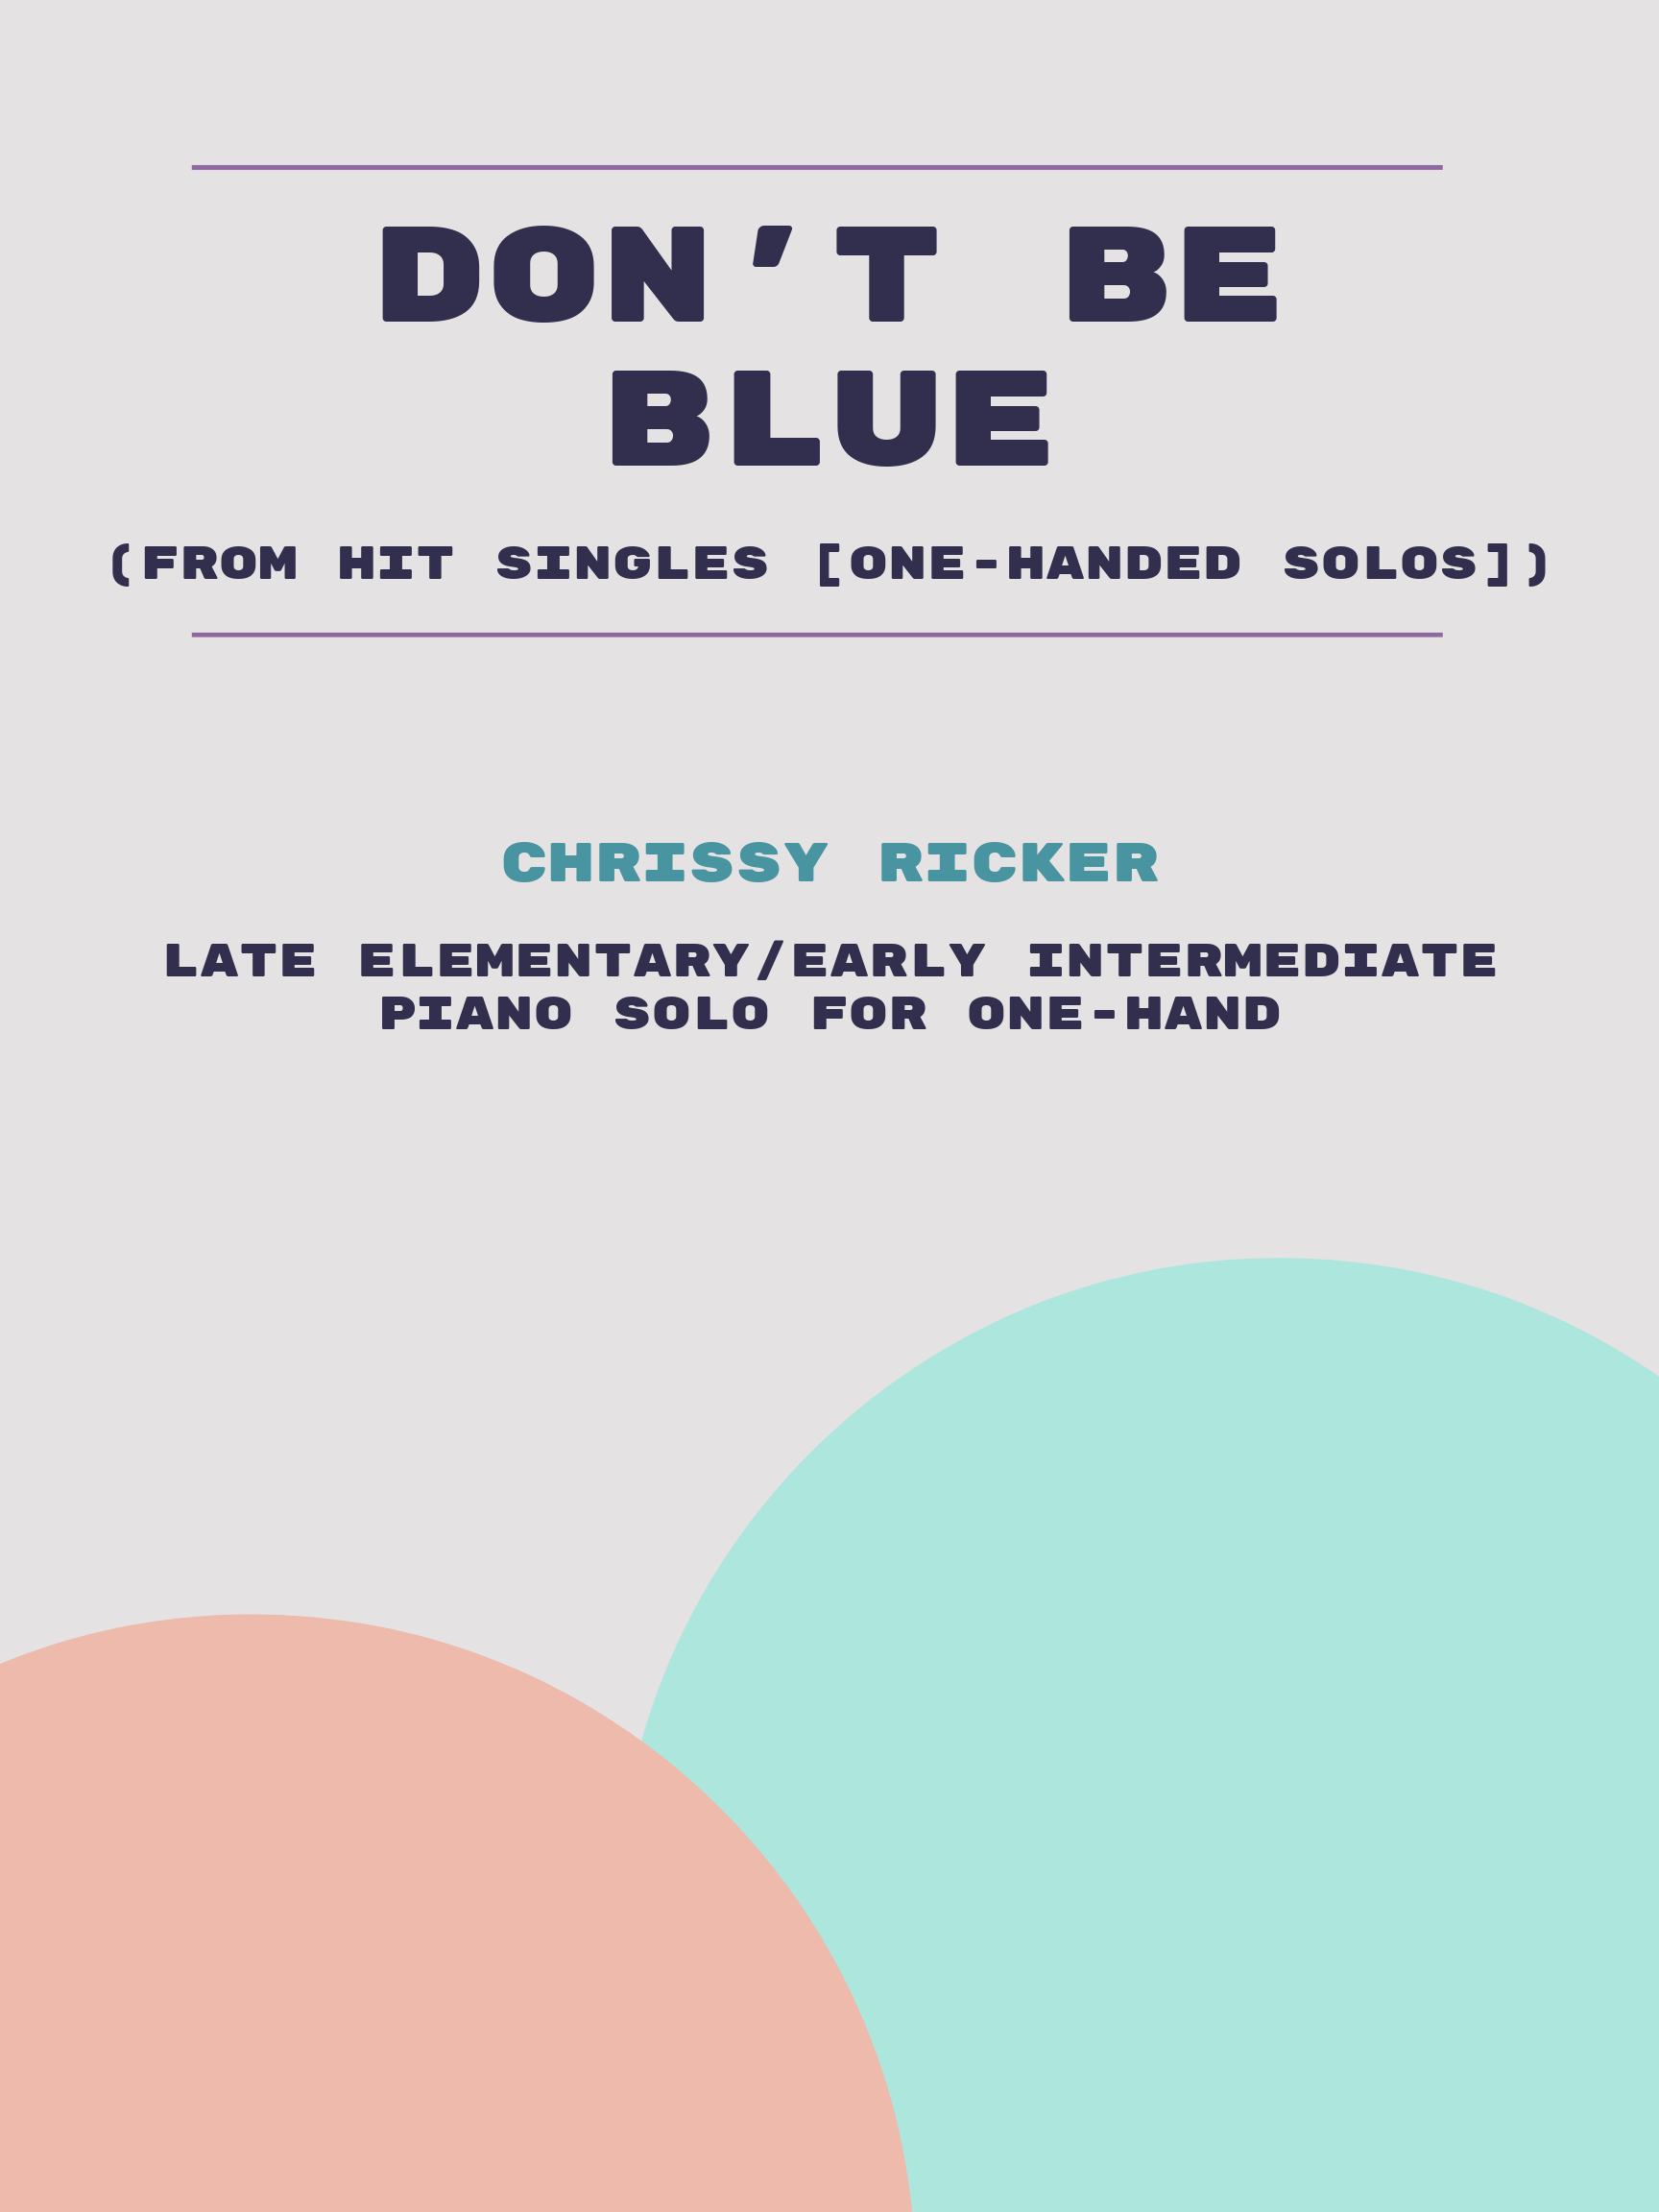 Don't Be Blue by Chrissy Ricker